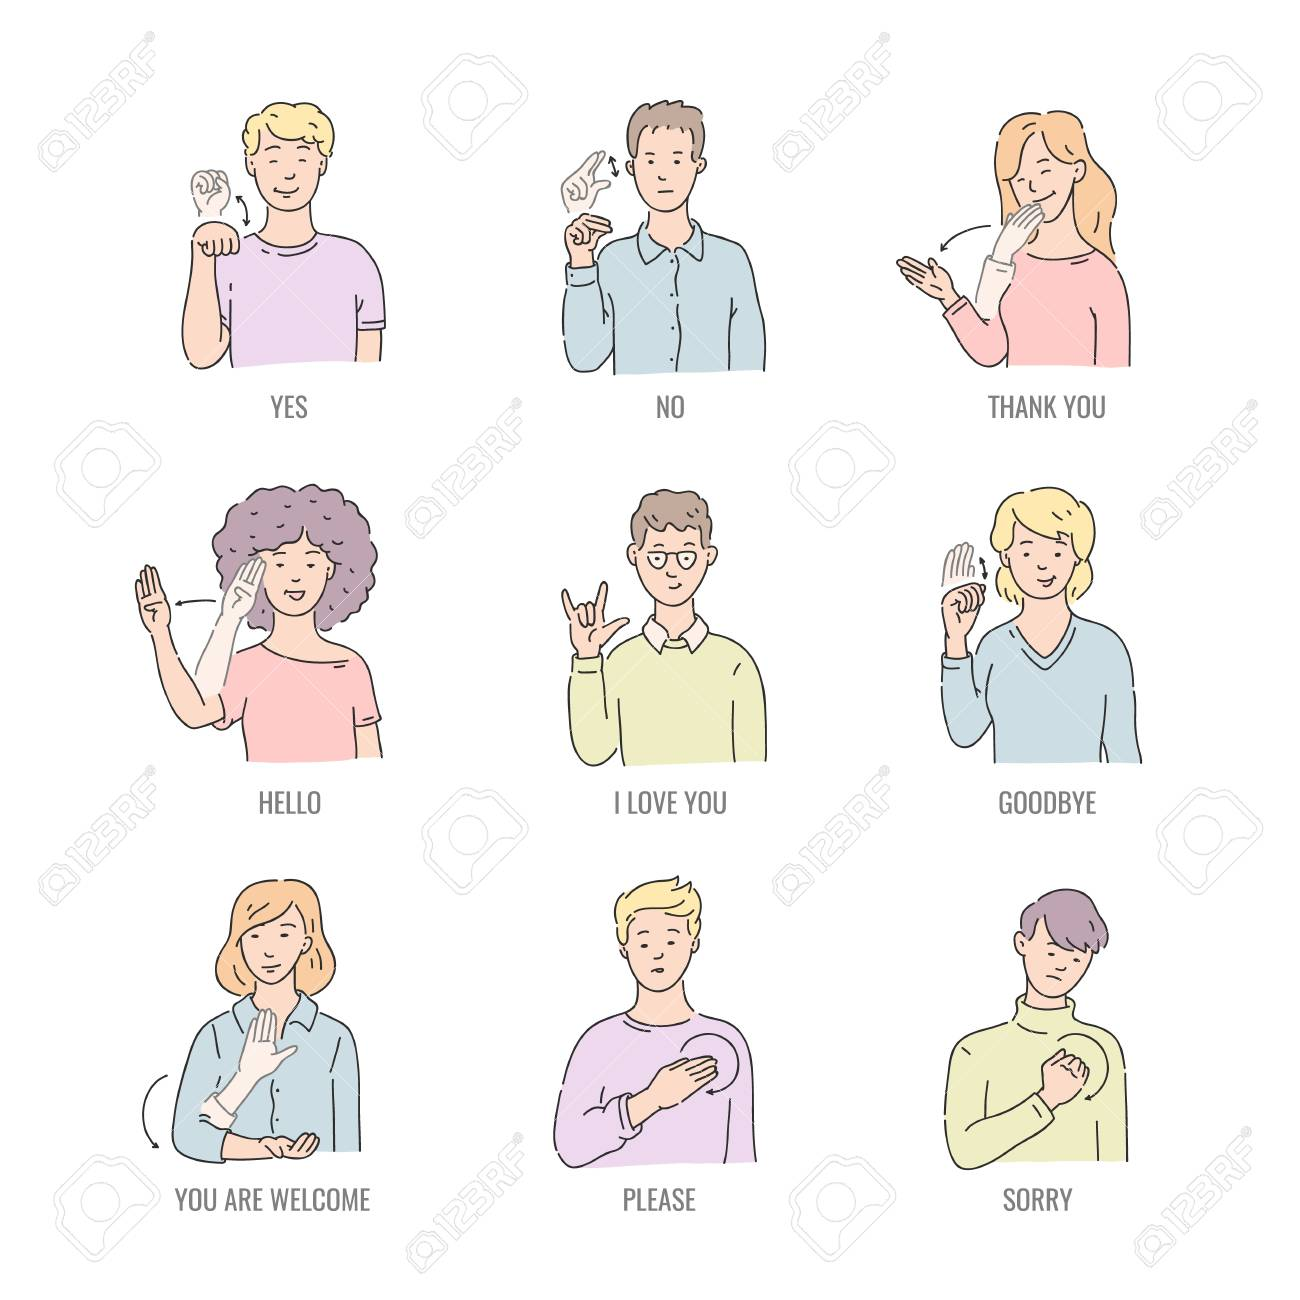 Deaf english basic words in line art isolated on white background - vector illustration set of people using gesture in american sign language. Educational collection of fingerspelling. - 126714111